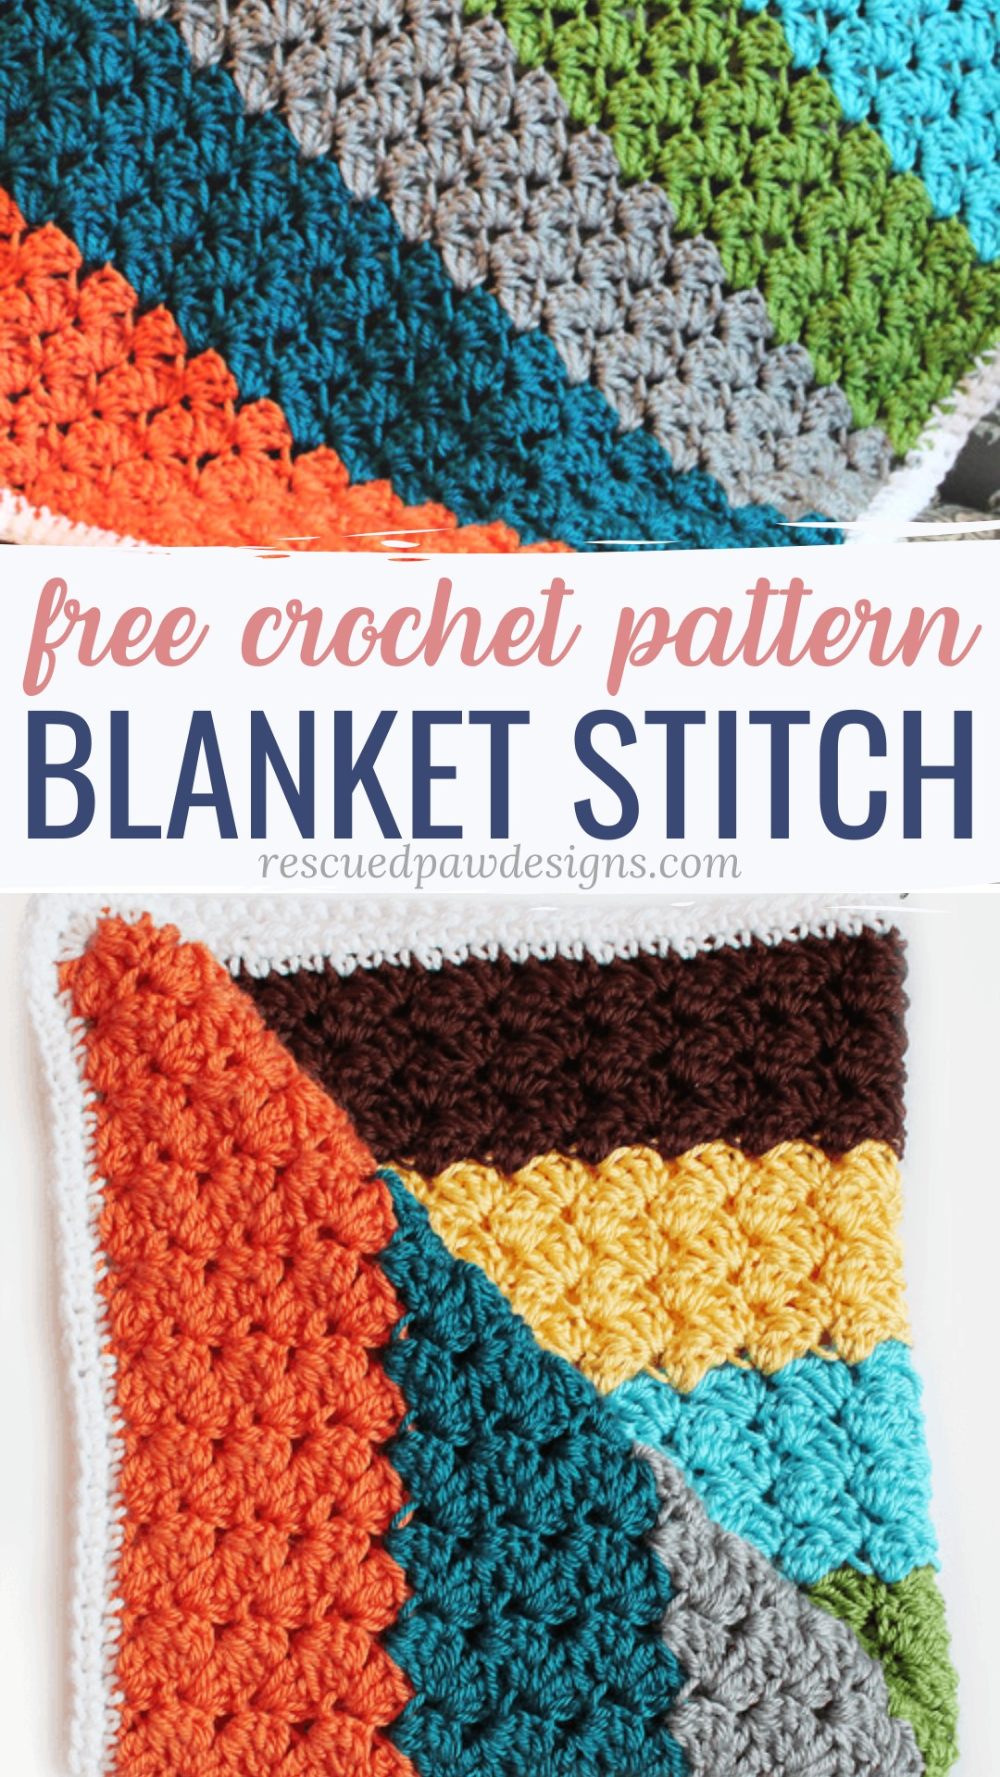 How to Crochet a Blanket Stitch Pattern - Rescued Paw Designs #crochetstitchespatterns